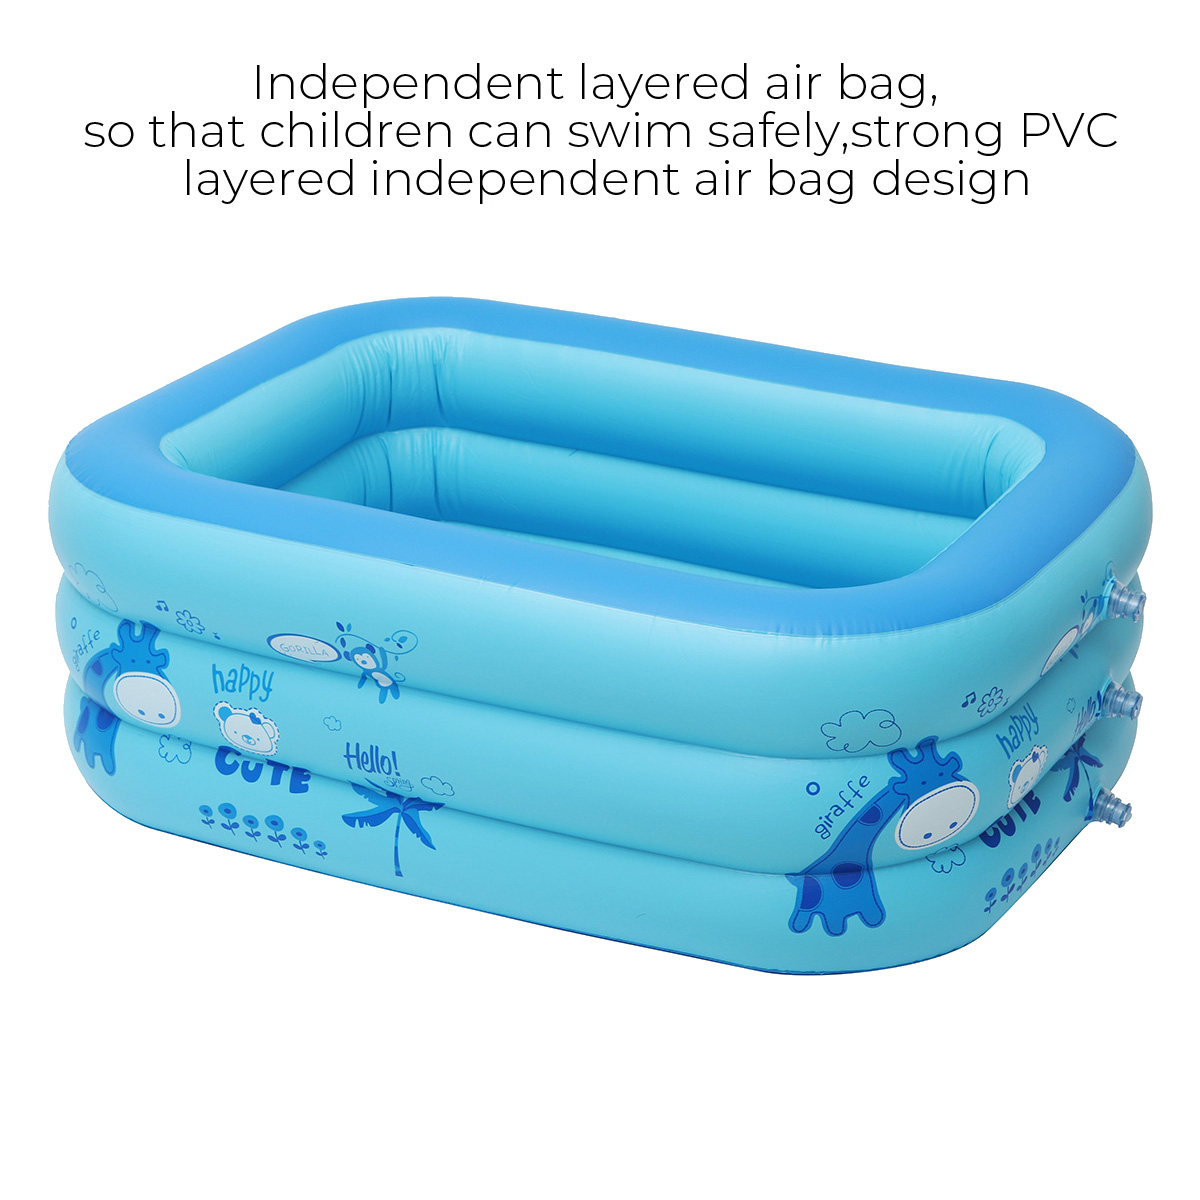 43-120inch Household Adult Childrens Inflatable Swimming Pool Indoors Outdoors Paddling Pool Suitable for 1-7people